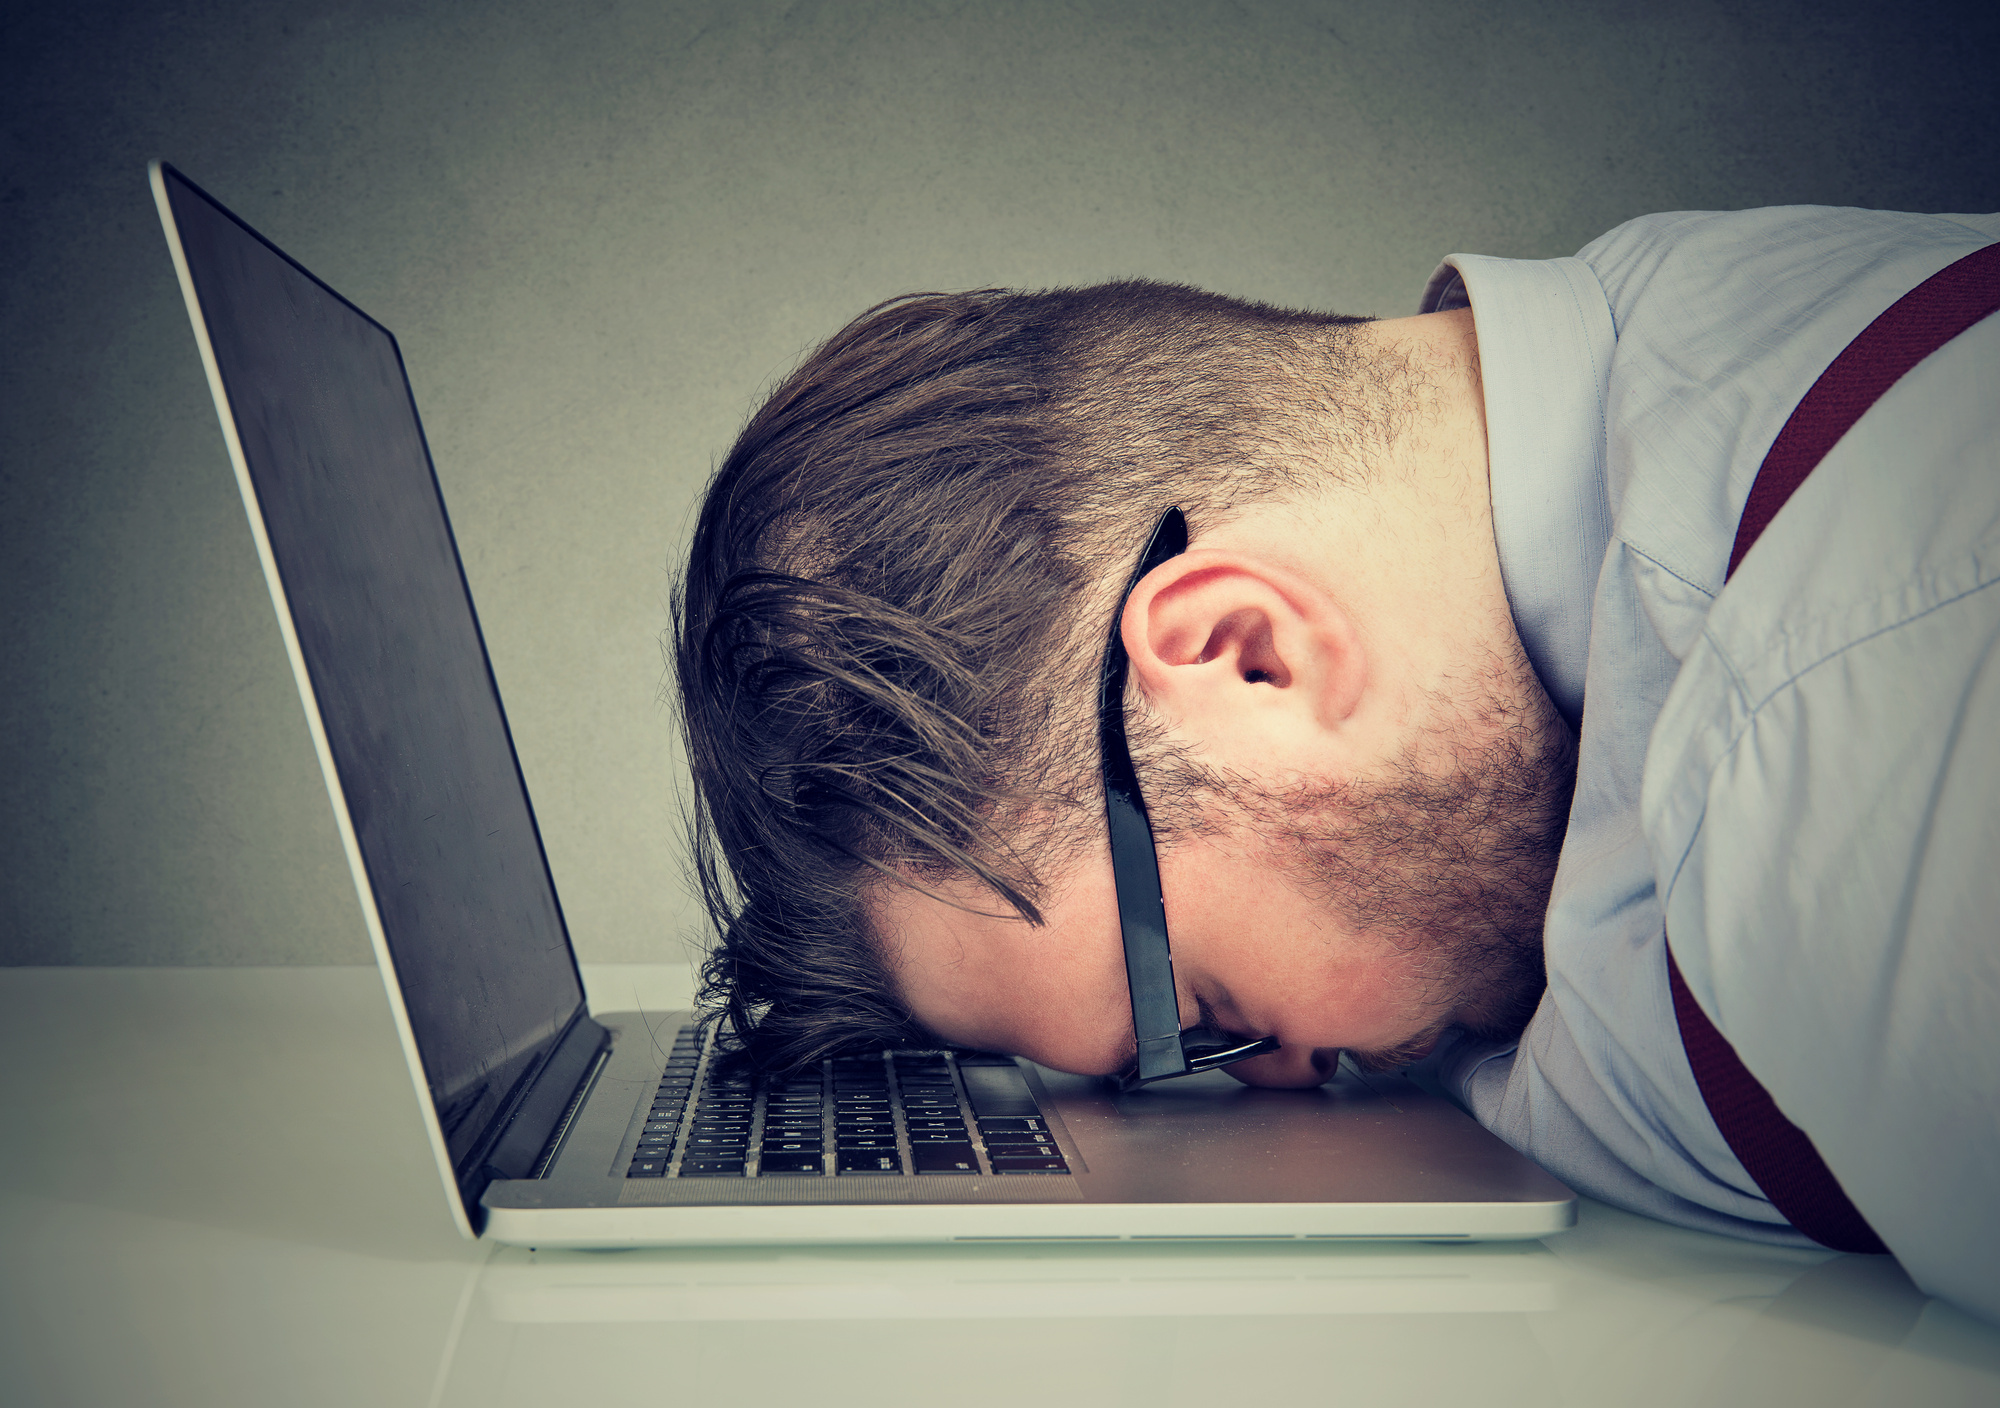 How to Prevent Common Computer Problems and Breaks (Hint, Use a Case!)